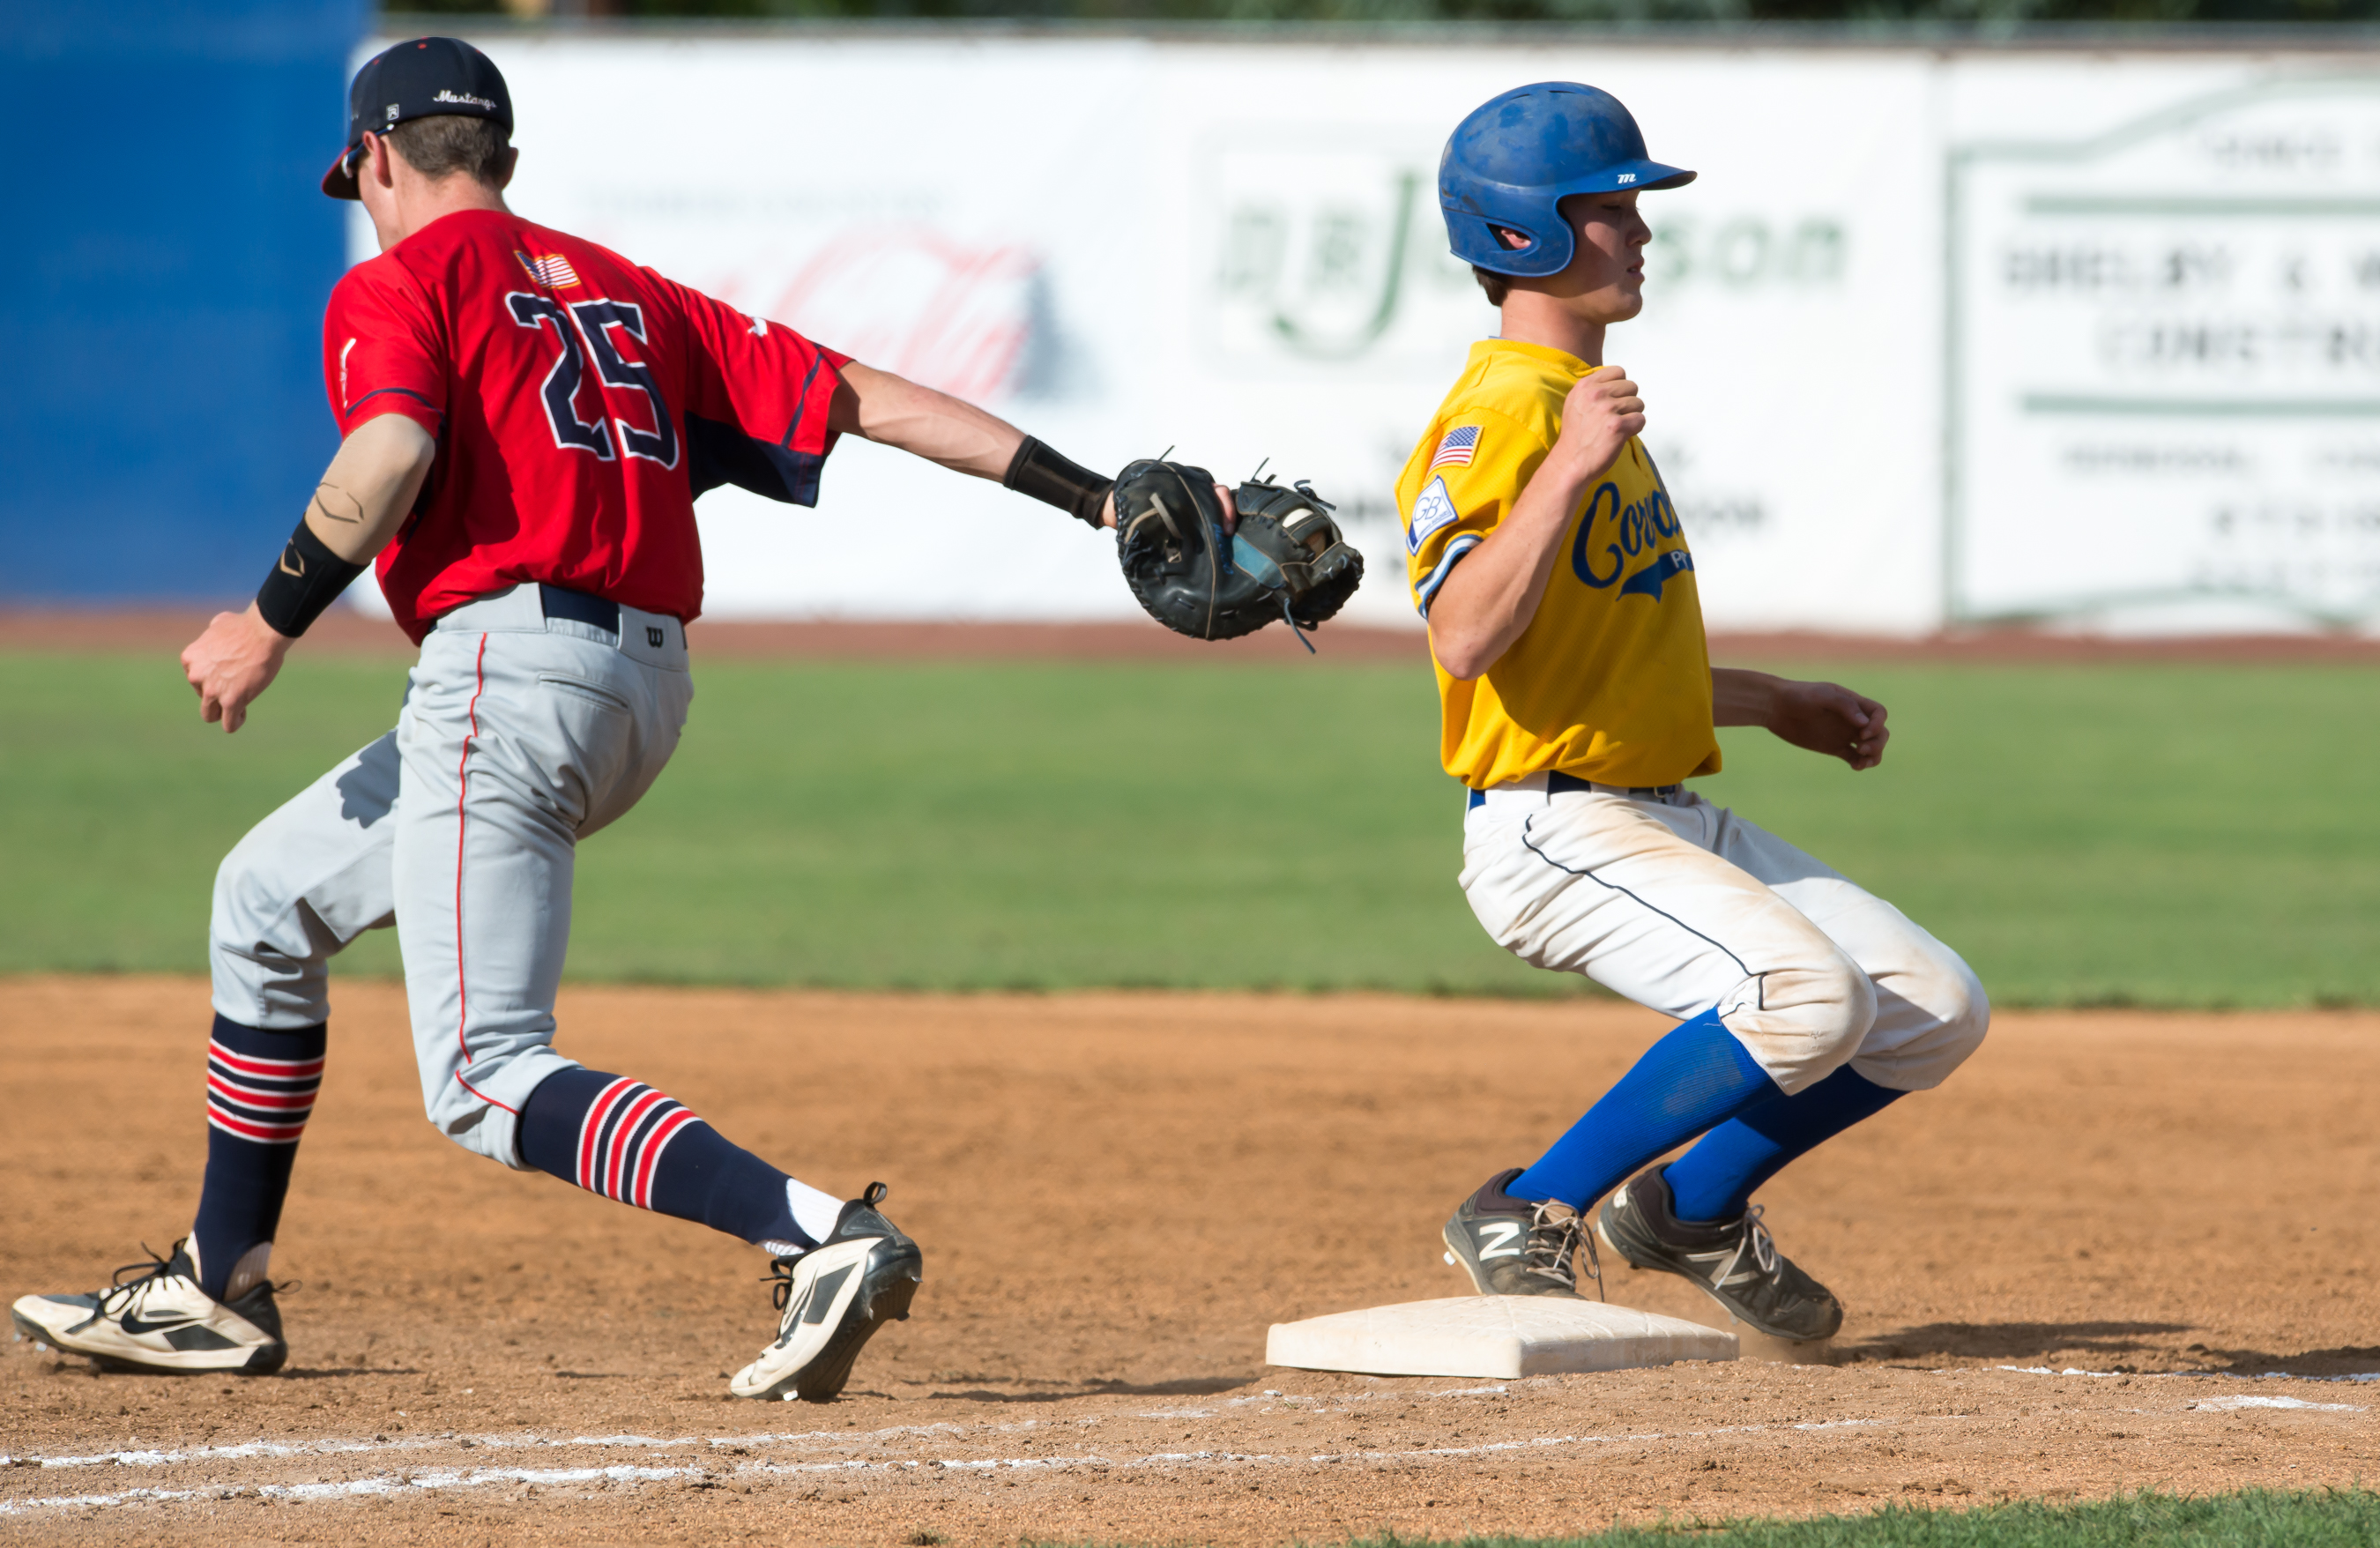 Medford first baseman Jacob Melton's swipe tag just misses Corvallis baserunner Franklin Leonard on a pickoff play in the eighth inning of Tuesday's game at Legion Field.